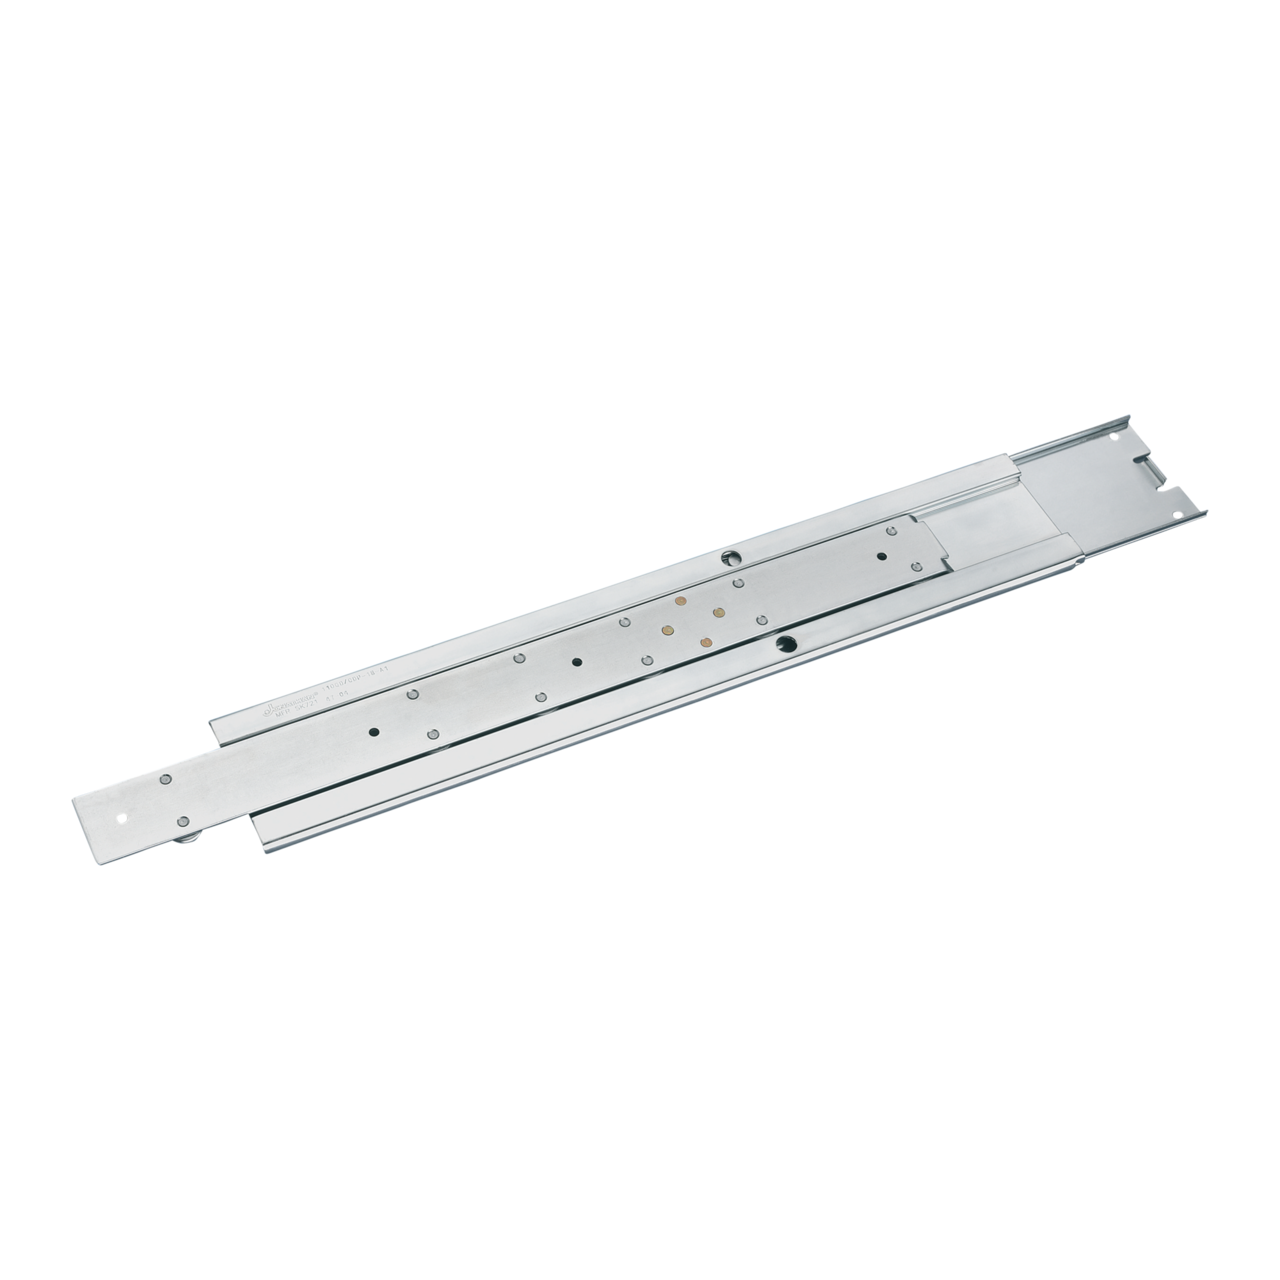 Image for Slim universal telescopic slide, 2 U from Schroff - North America